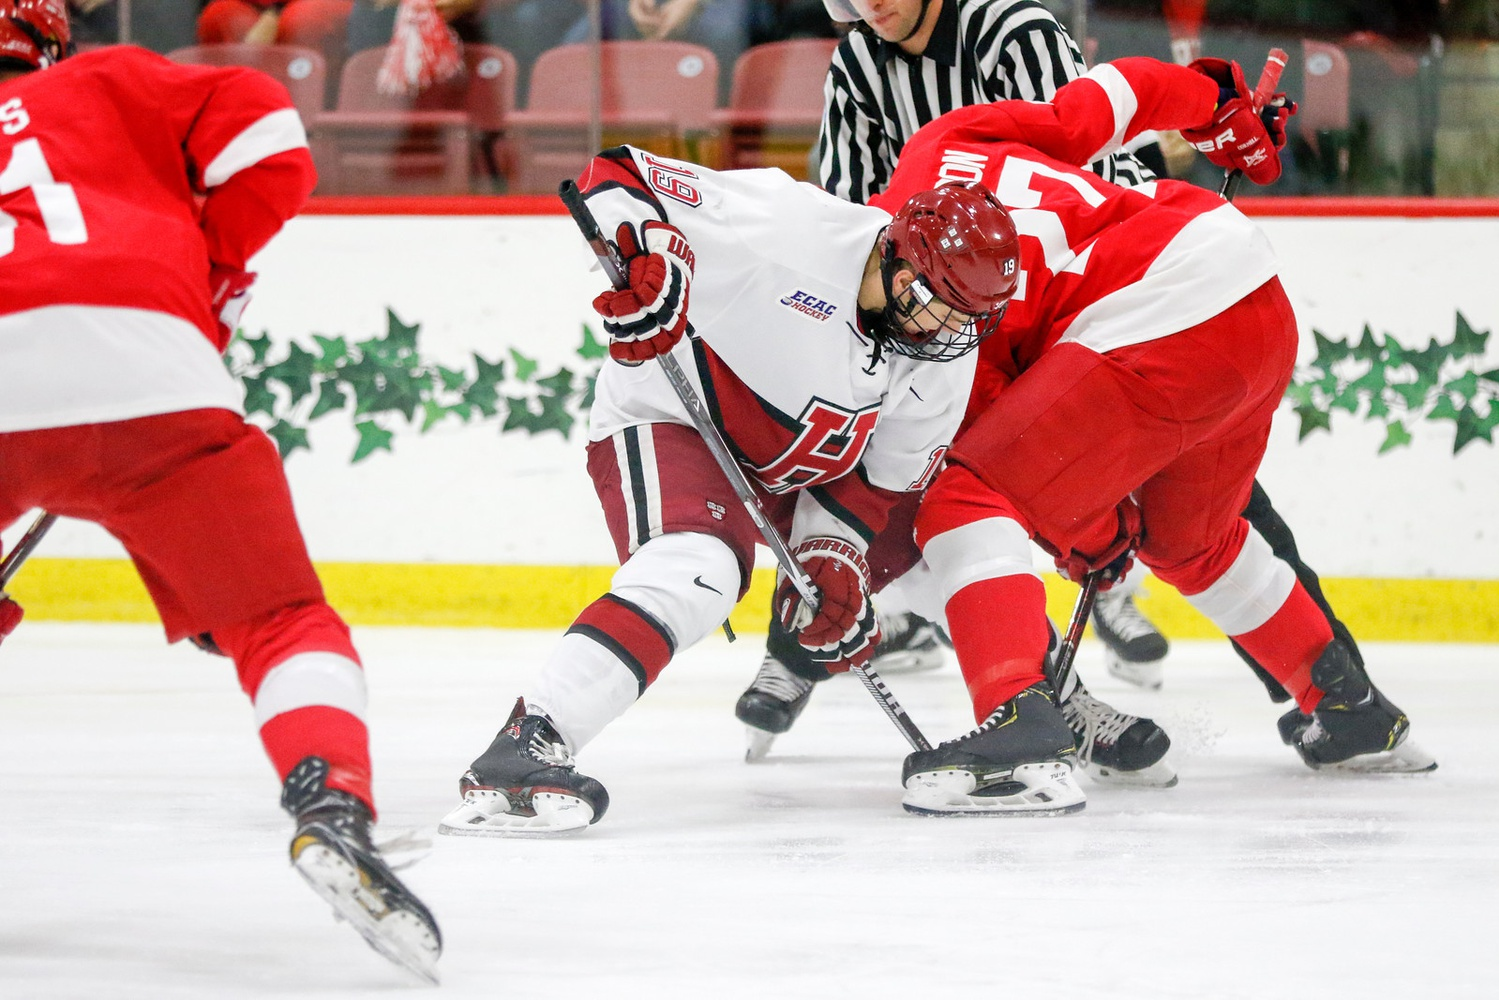 Both rivals entered Saturday's matchup with Harvard's victory at Madison Square Garden one week prior still fresh in their memories.